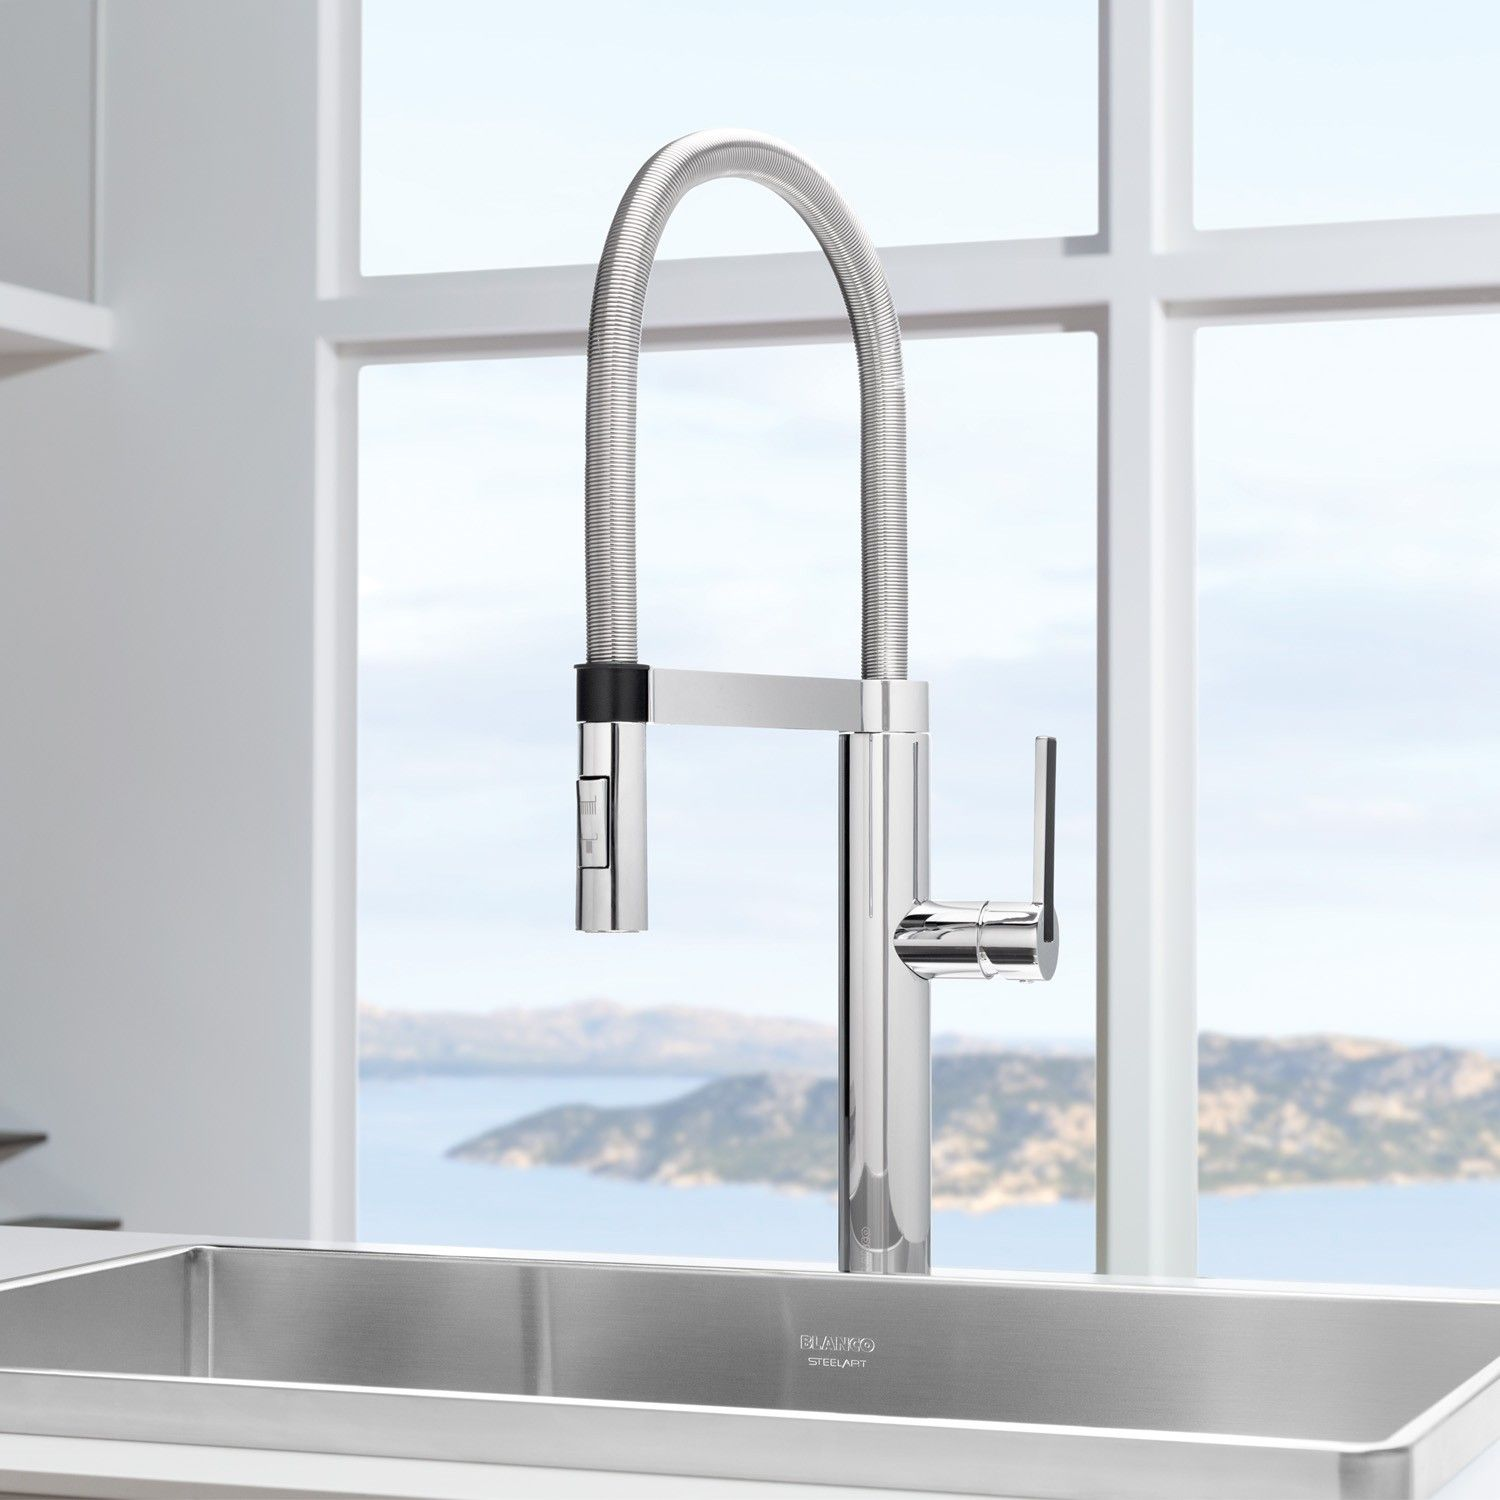 rohl kitchen faucets Culina Semi Pro Kitchen Faucet by Blanco YLiving